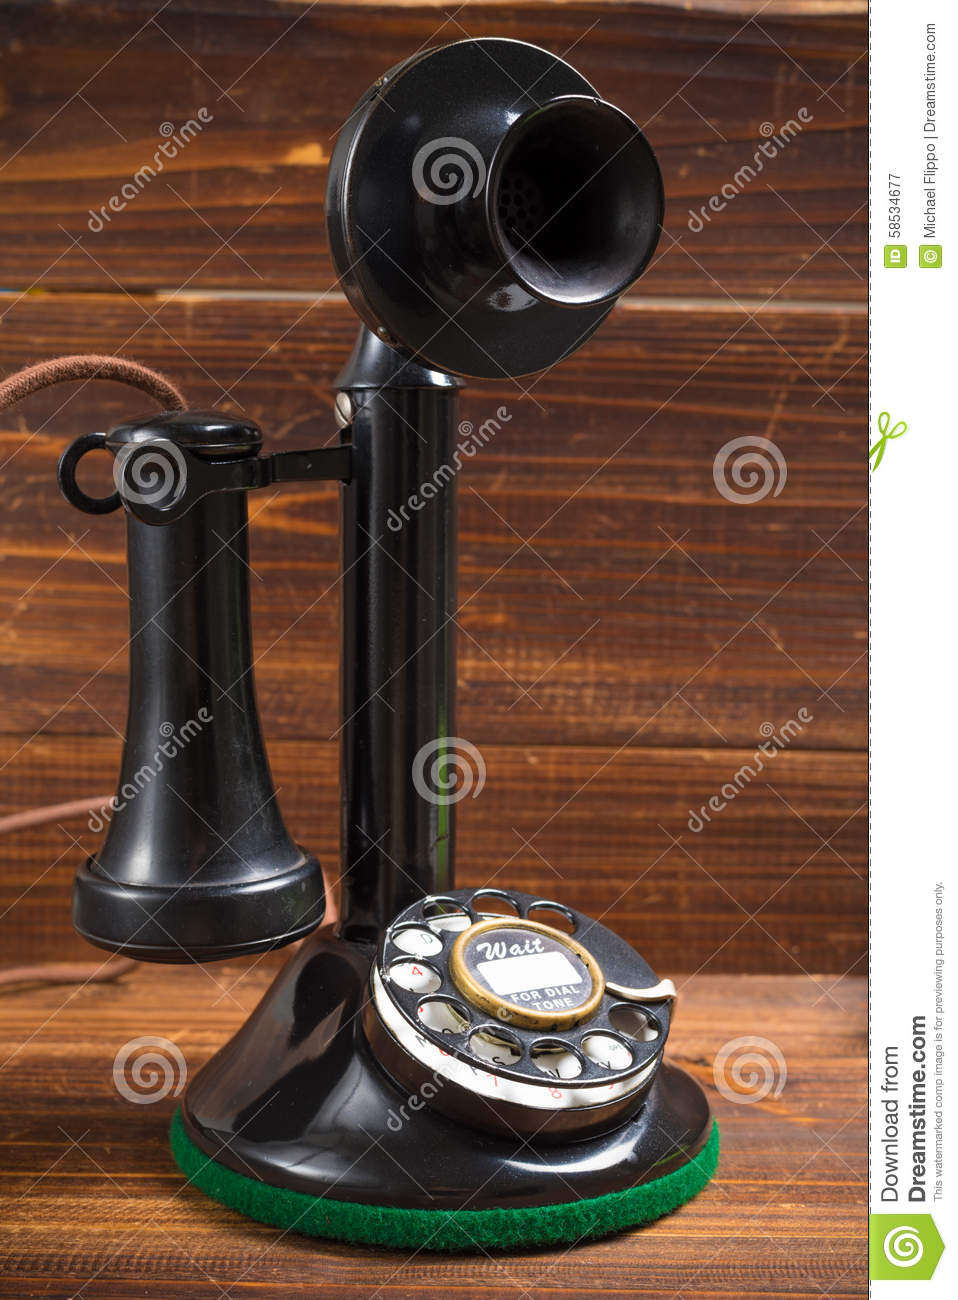 Vintage, antique candlestick telephone with dial on wood background